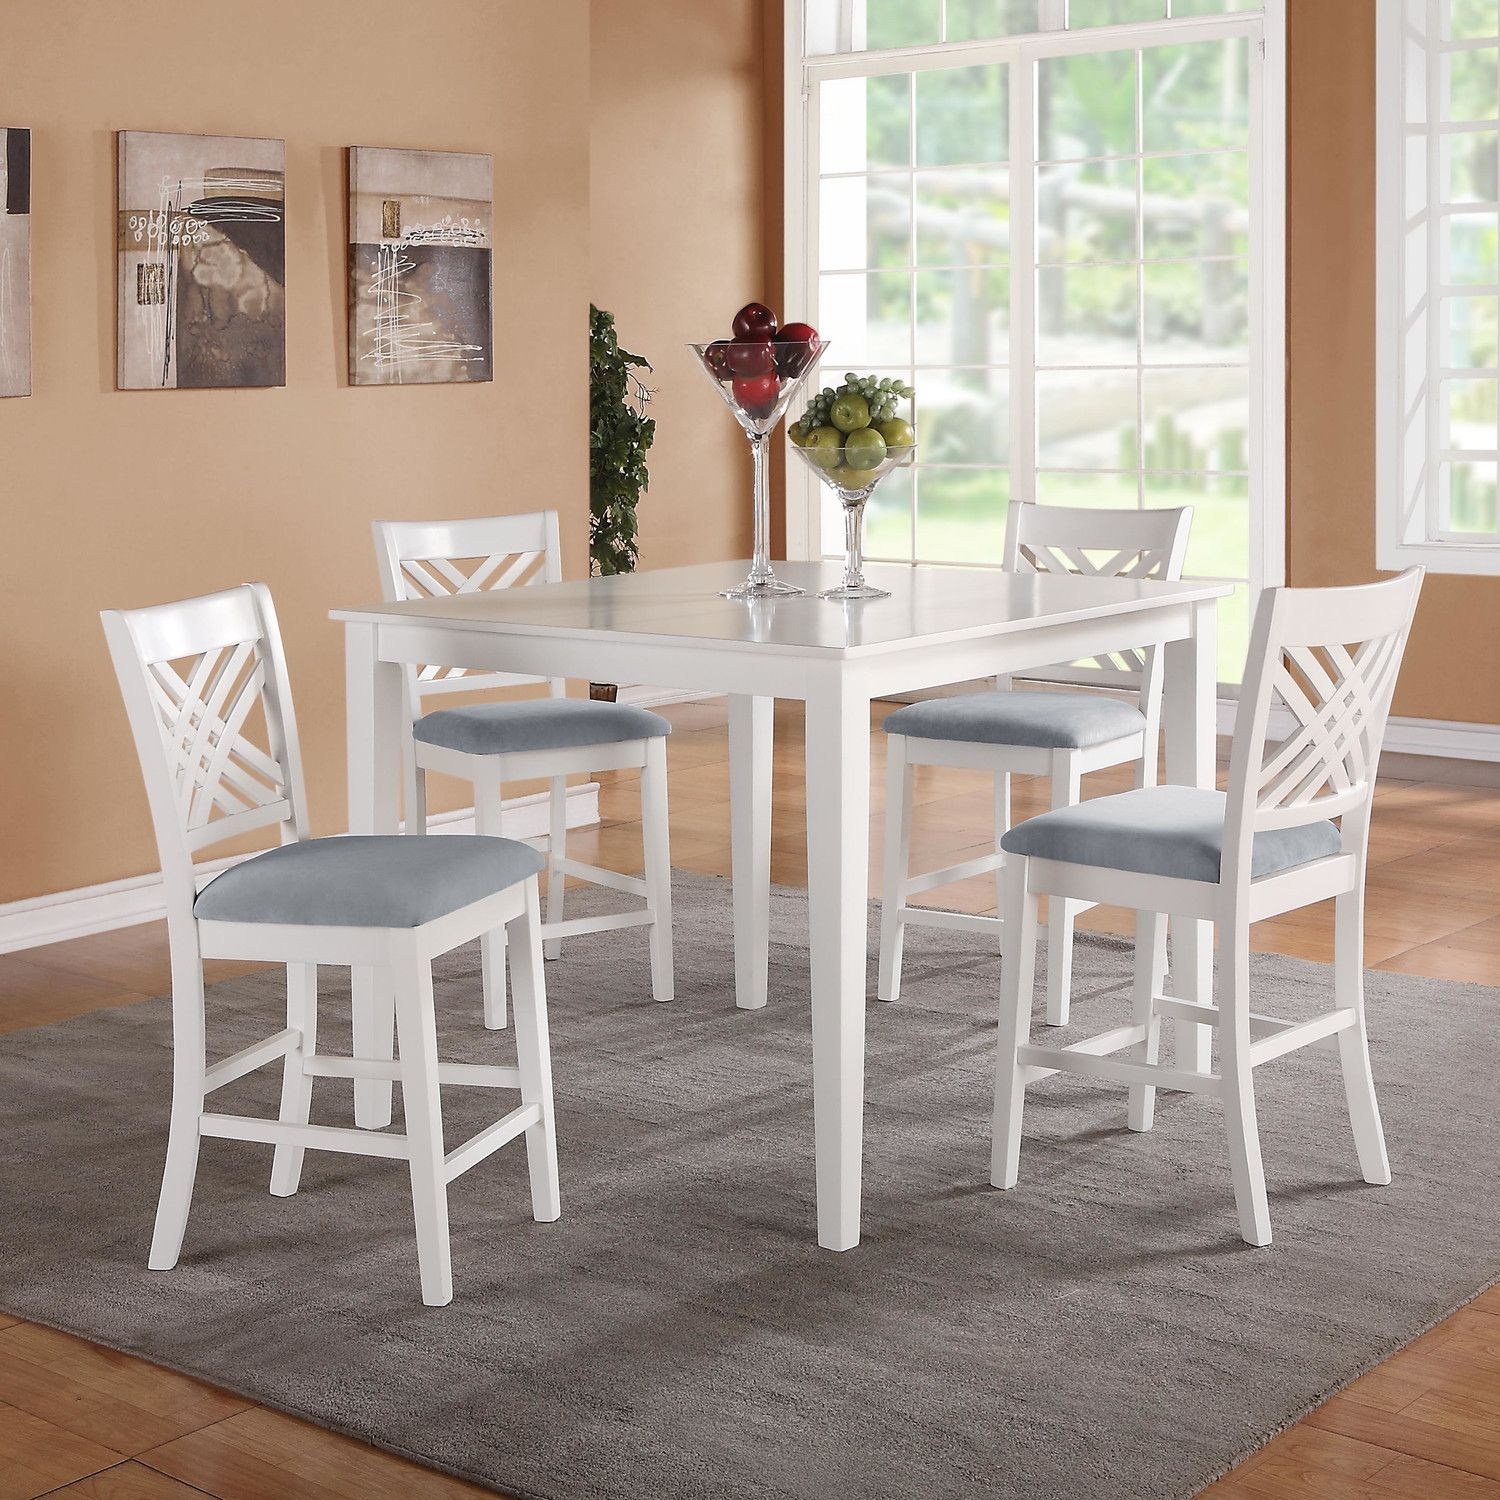 Brooklyn Collection White Counter Dining Set Includes Table And Four Side Chairs Features Smooth Transitional Styling Great Detailing On